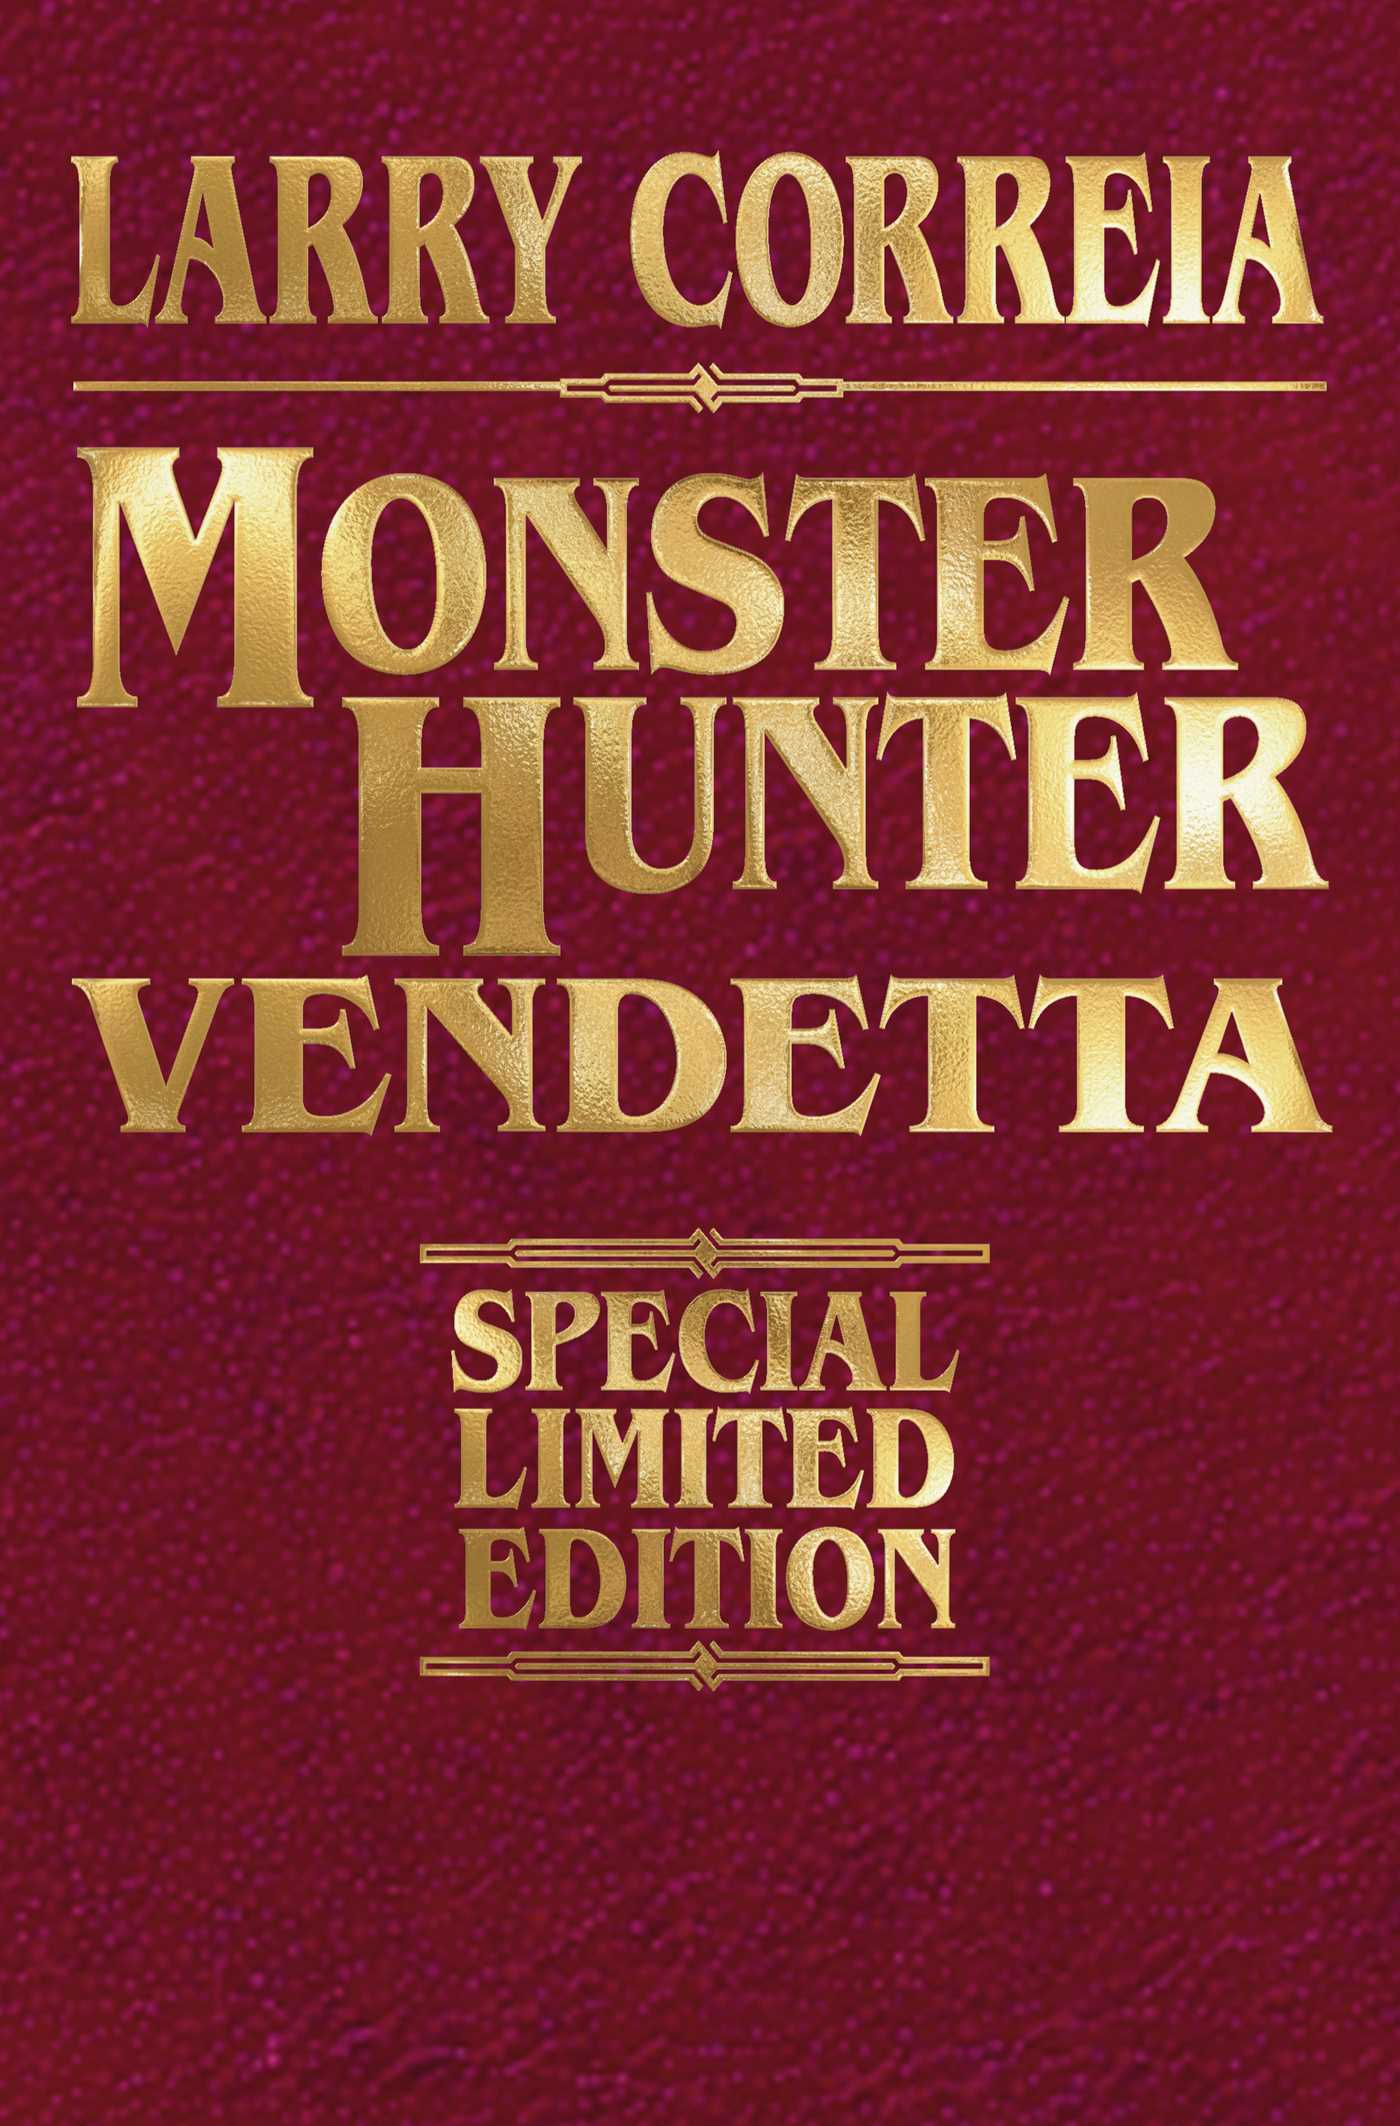 Monster hunter vendetta signed leatherbound edition 9781476782218 hr